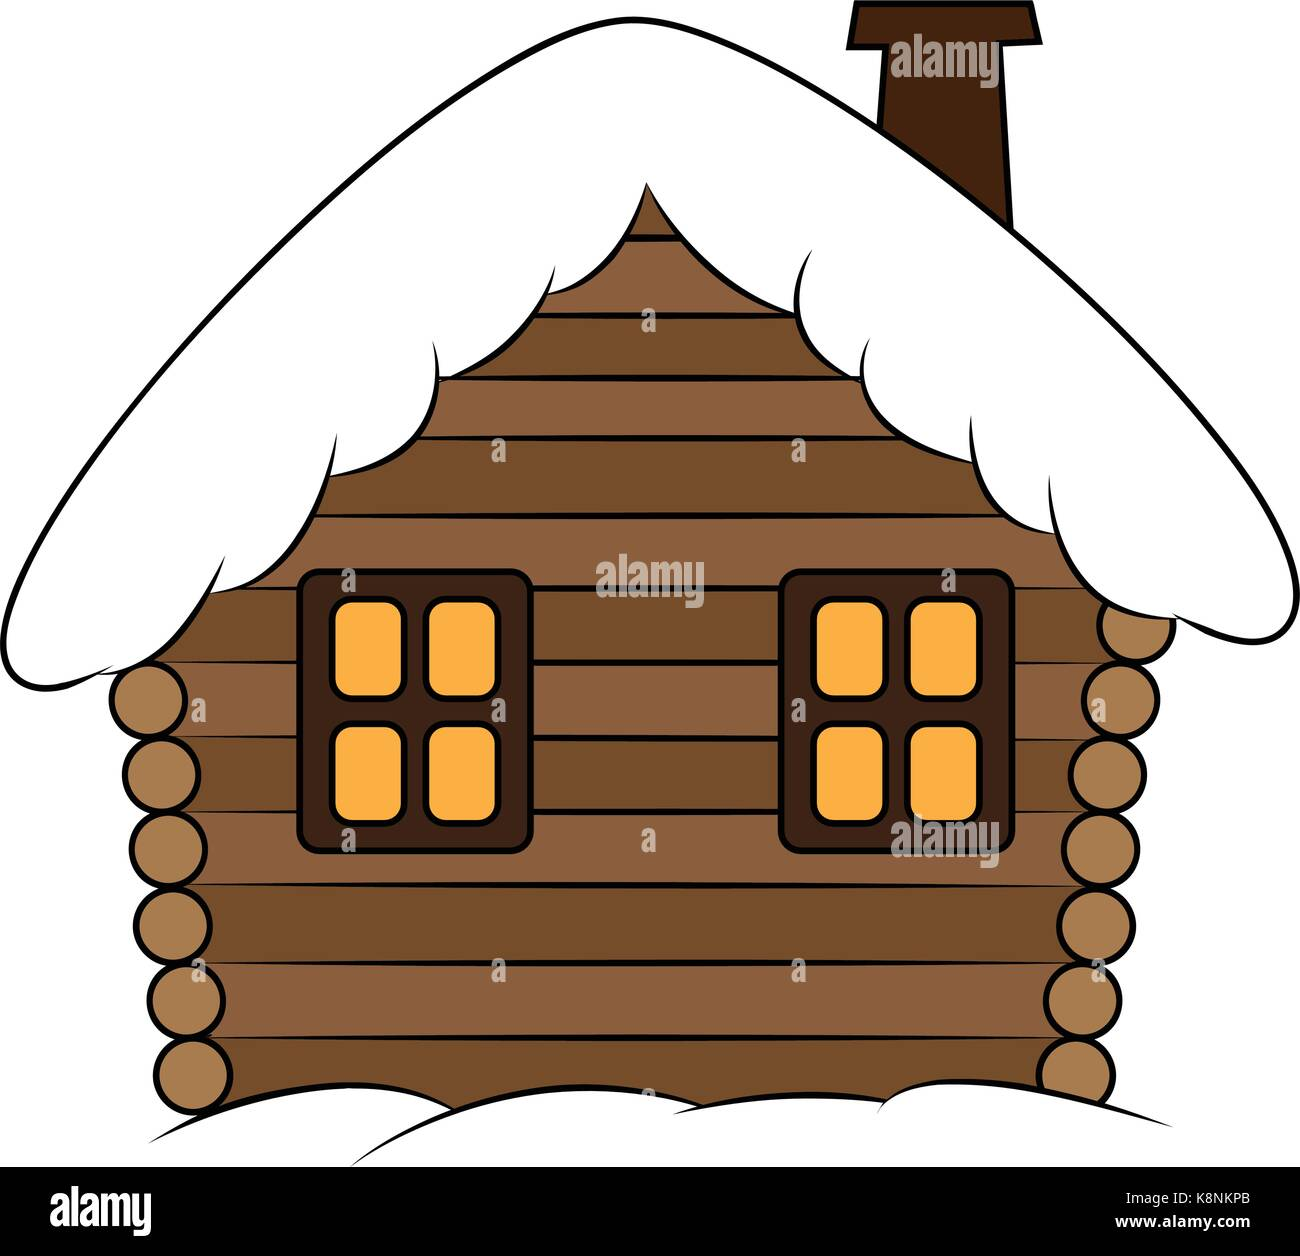 House With Snow Cartoon Illustration Winter Snowy Christmas Home Cottage Isolated On White Background